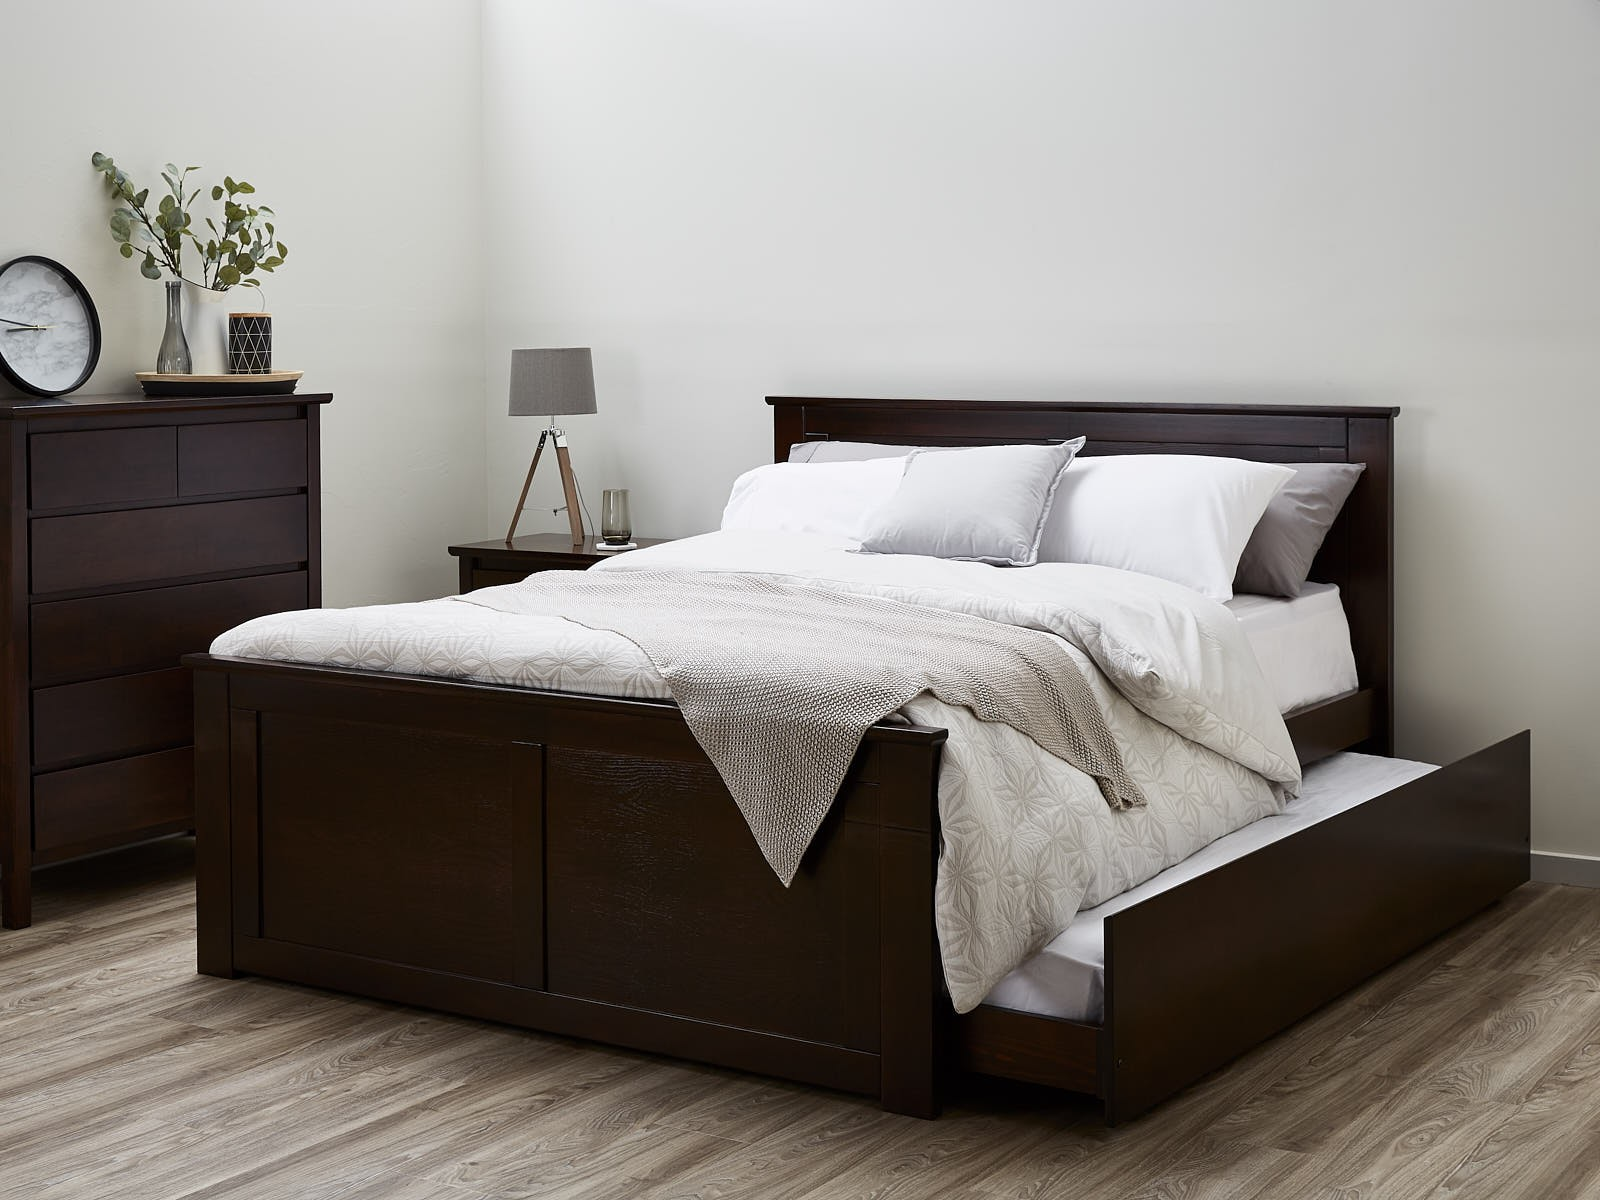 Image of: Bed With Trundle Hardwood